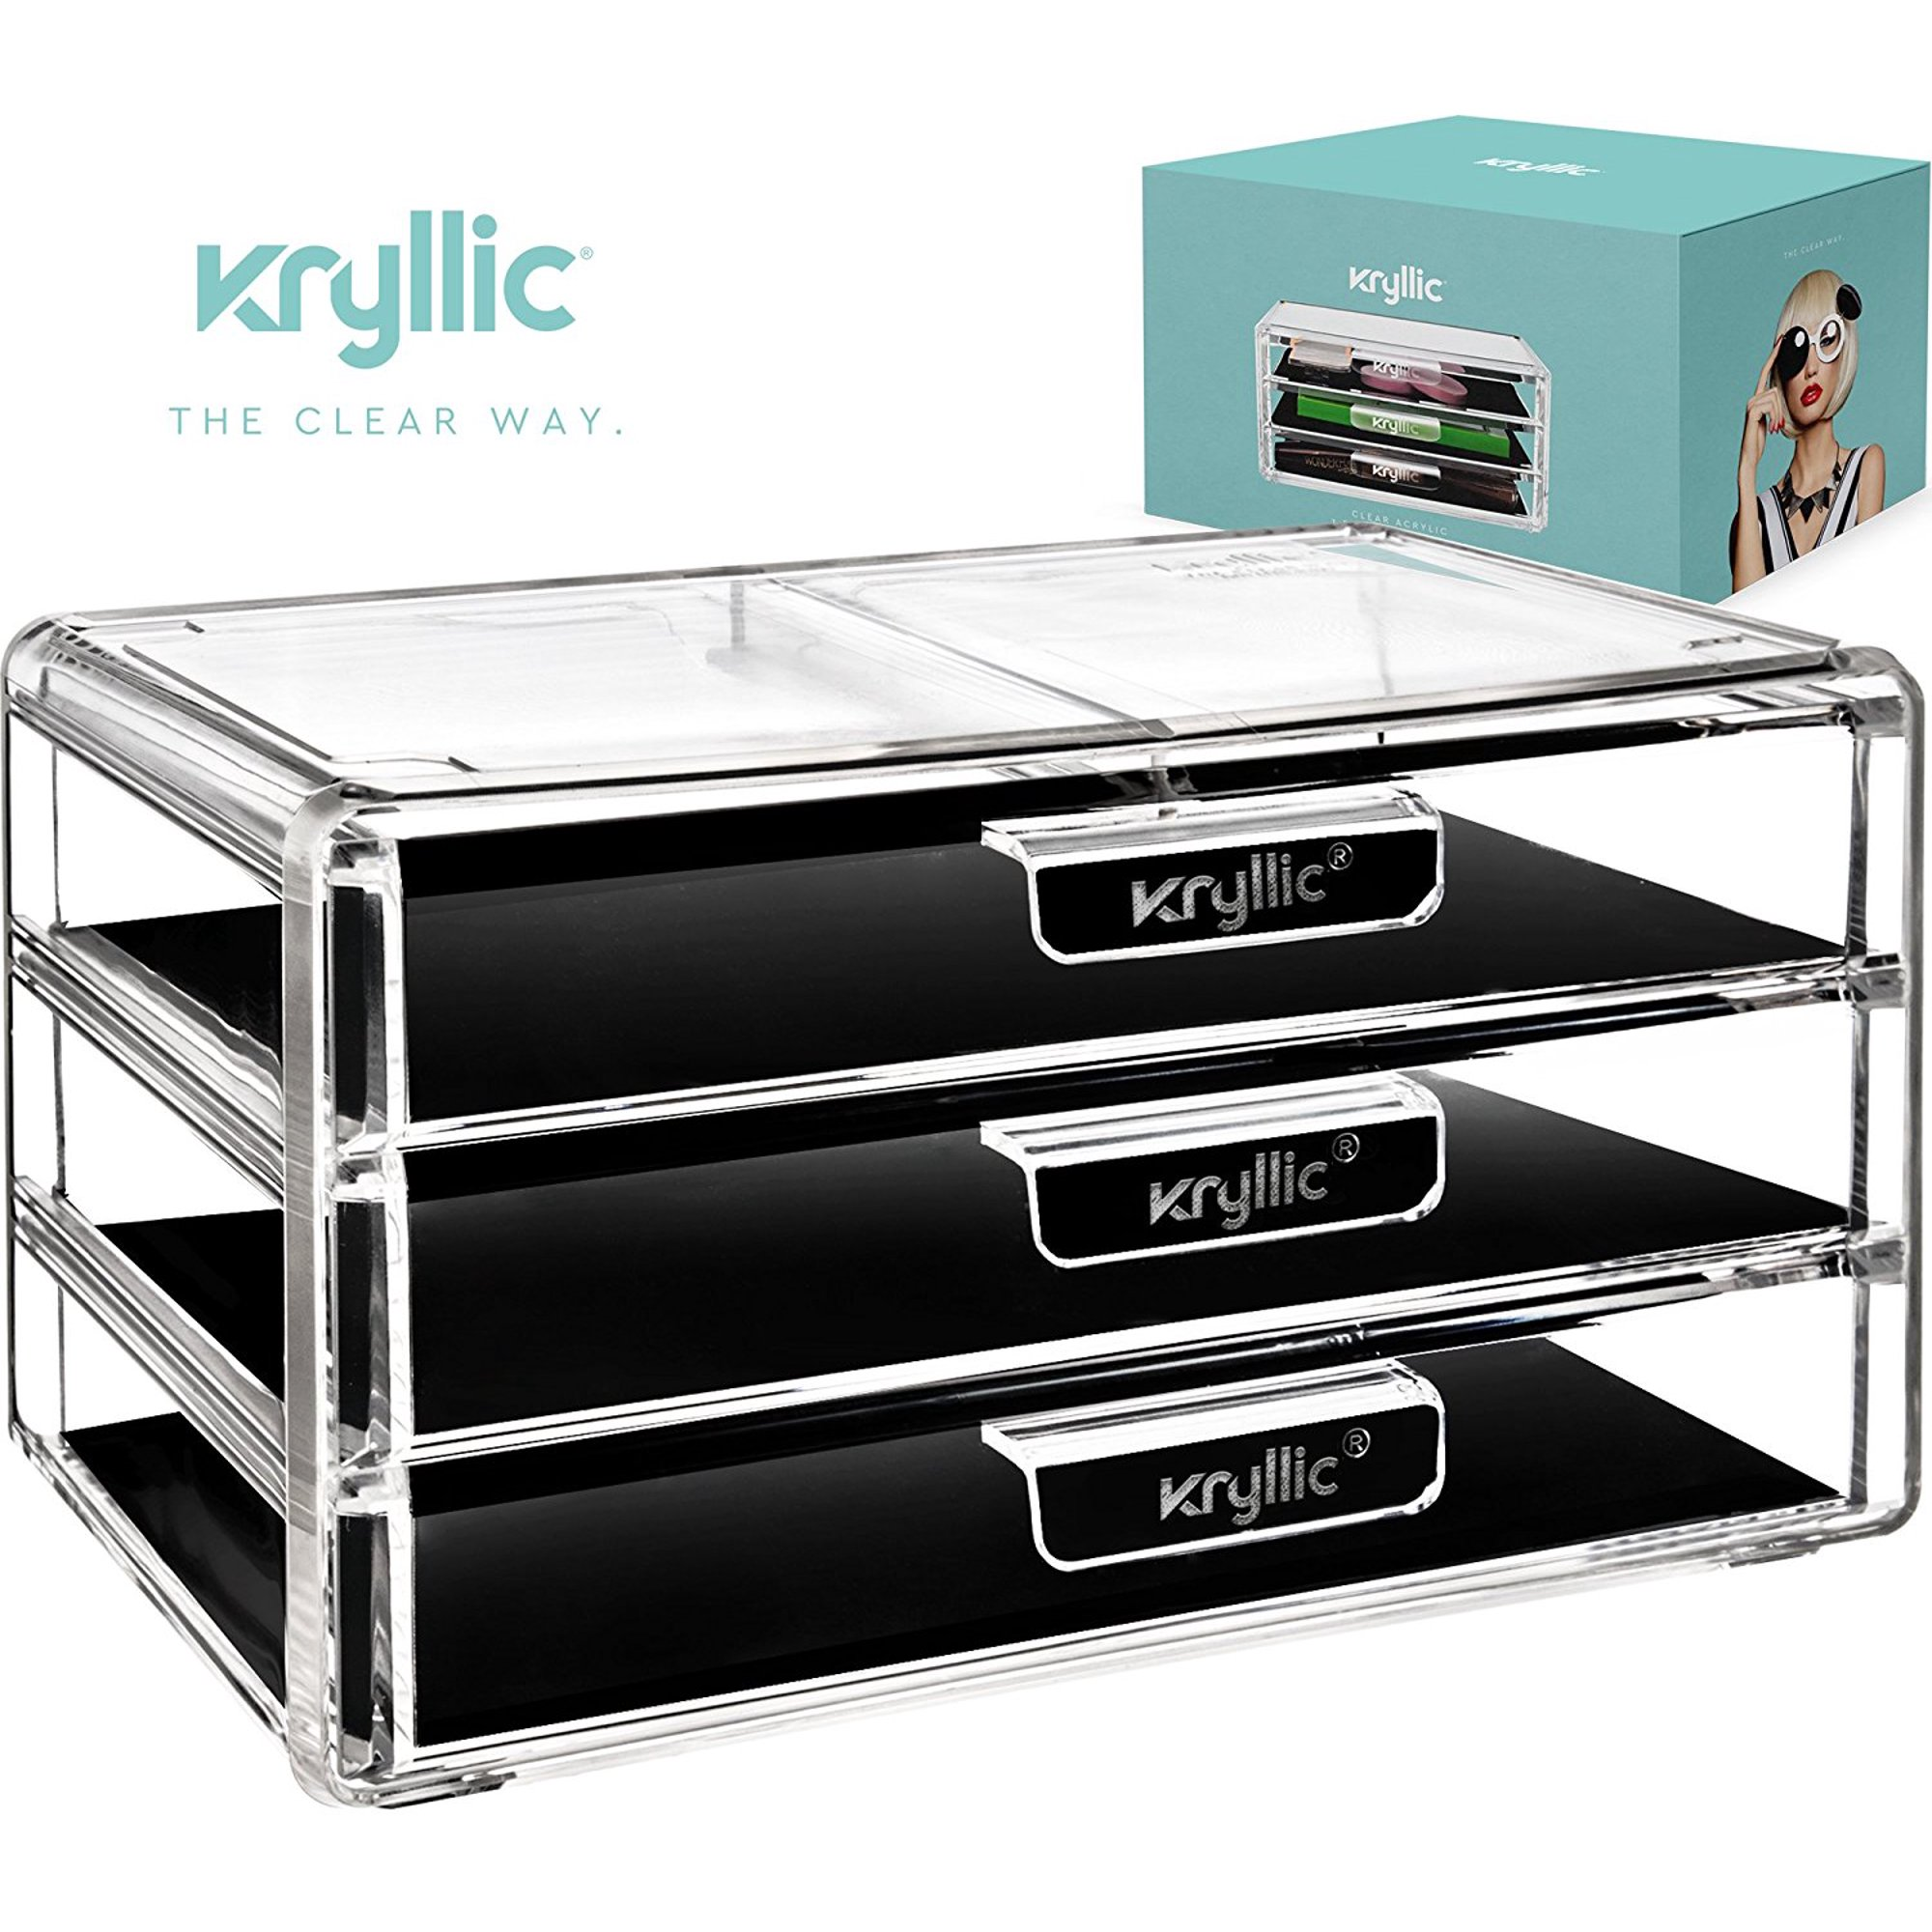 aa1f9df26c0c Kryllic Acrylic Makeup Jewelry Cosmetic Organizer - Clear Acrylic Display  Storage for Jewelry Makeup Pallets & all Bathroom Accessories keep your  Vanity ...